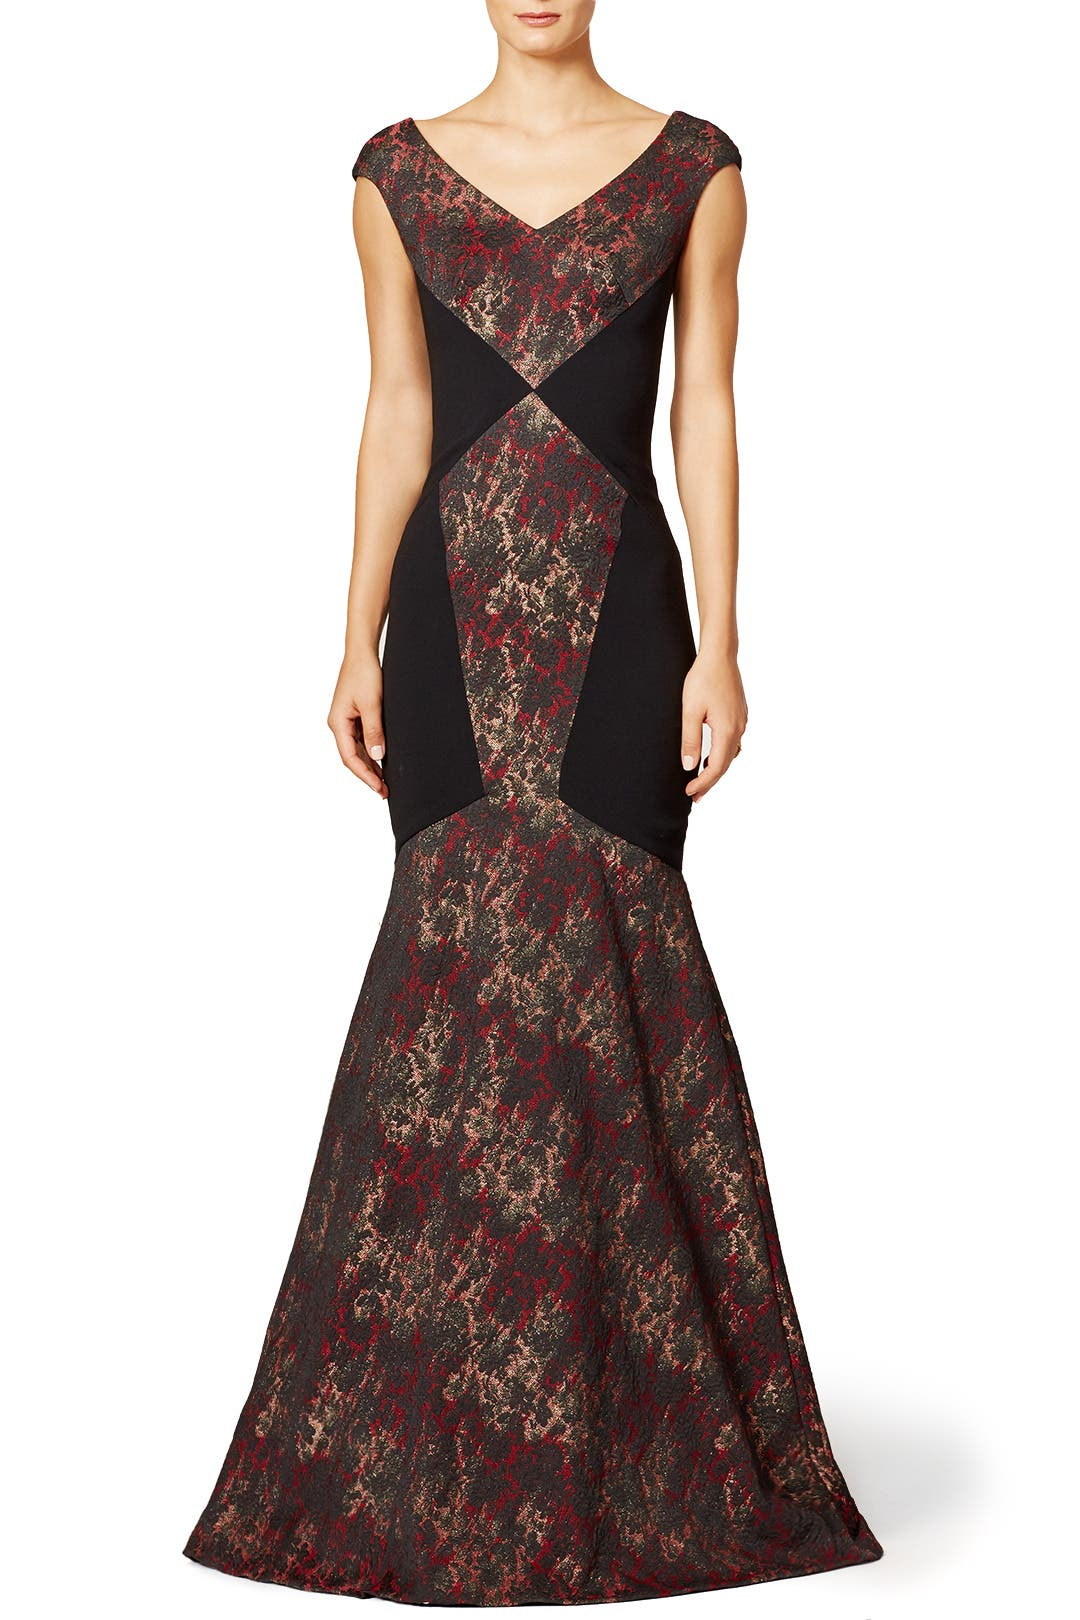 dd3aebab90 Dresses  Brand Theia Great selection and prices for Wedding Gifts ...